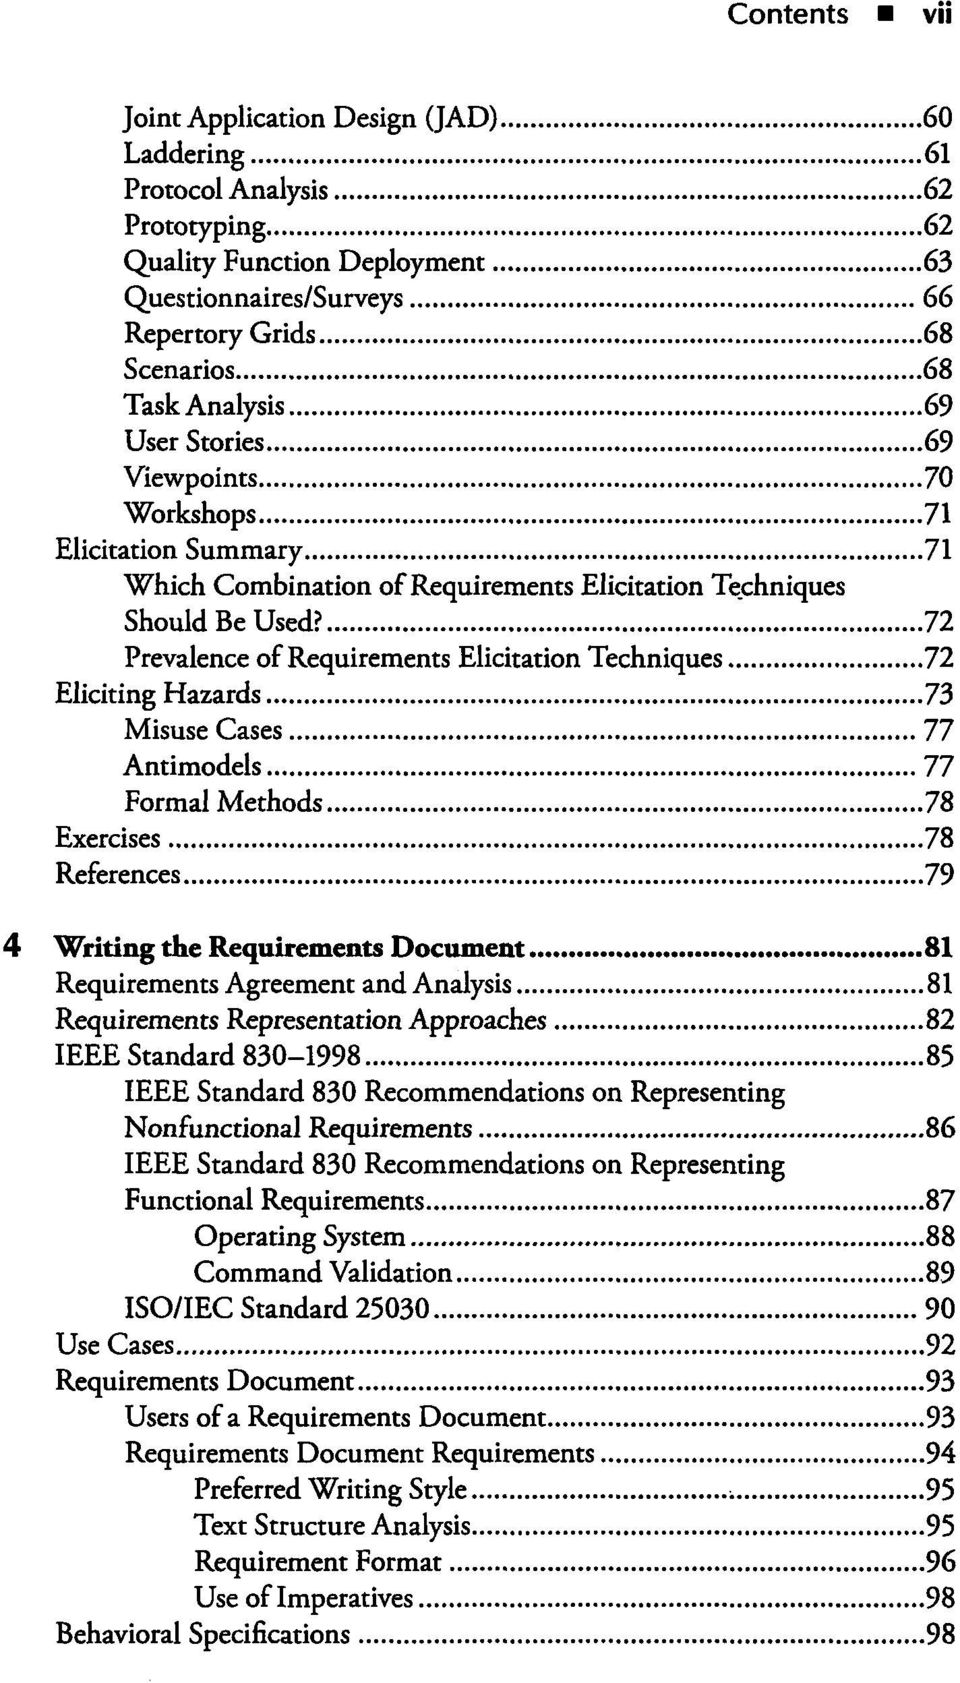 72 Prevalence of Requirements Elicitation Techniques 72 Eliciting Hazards 73 Misuse Cases 77 Antimodels 77 Formal Methods 78 Exercises 78 References 79 4 Writing the Requirements Document 81